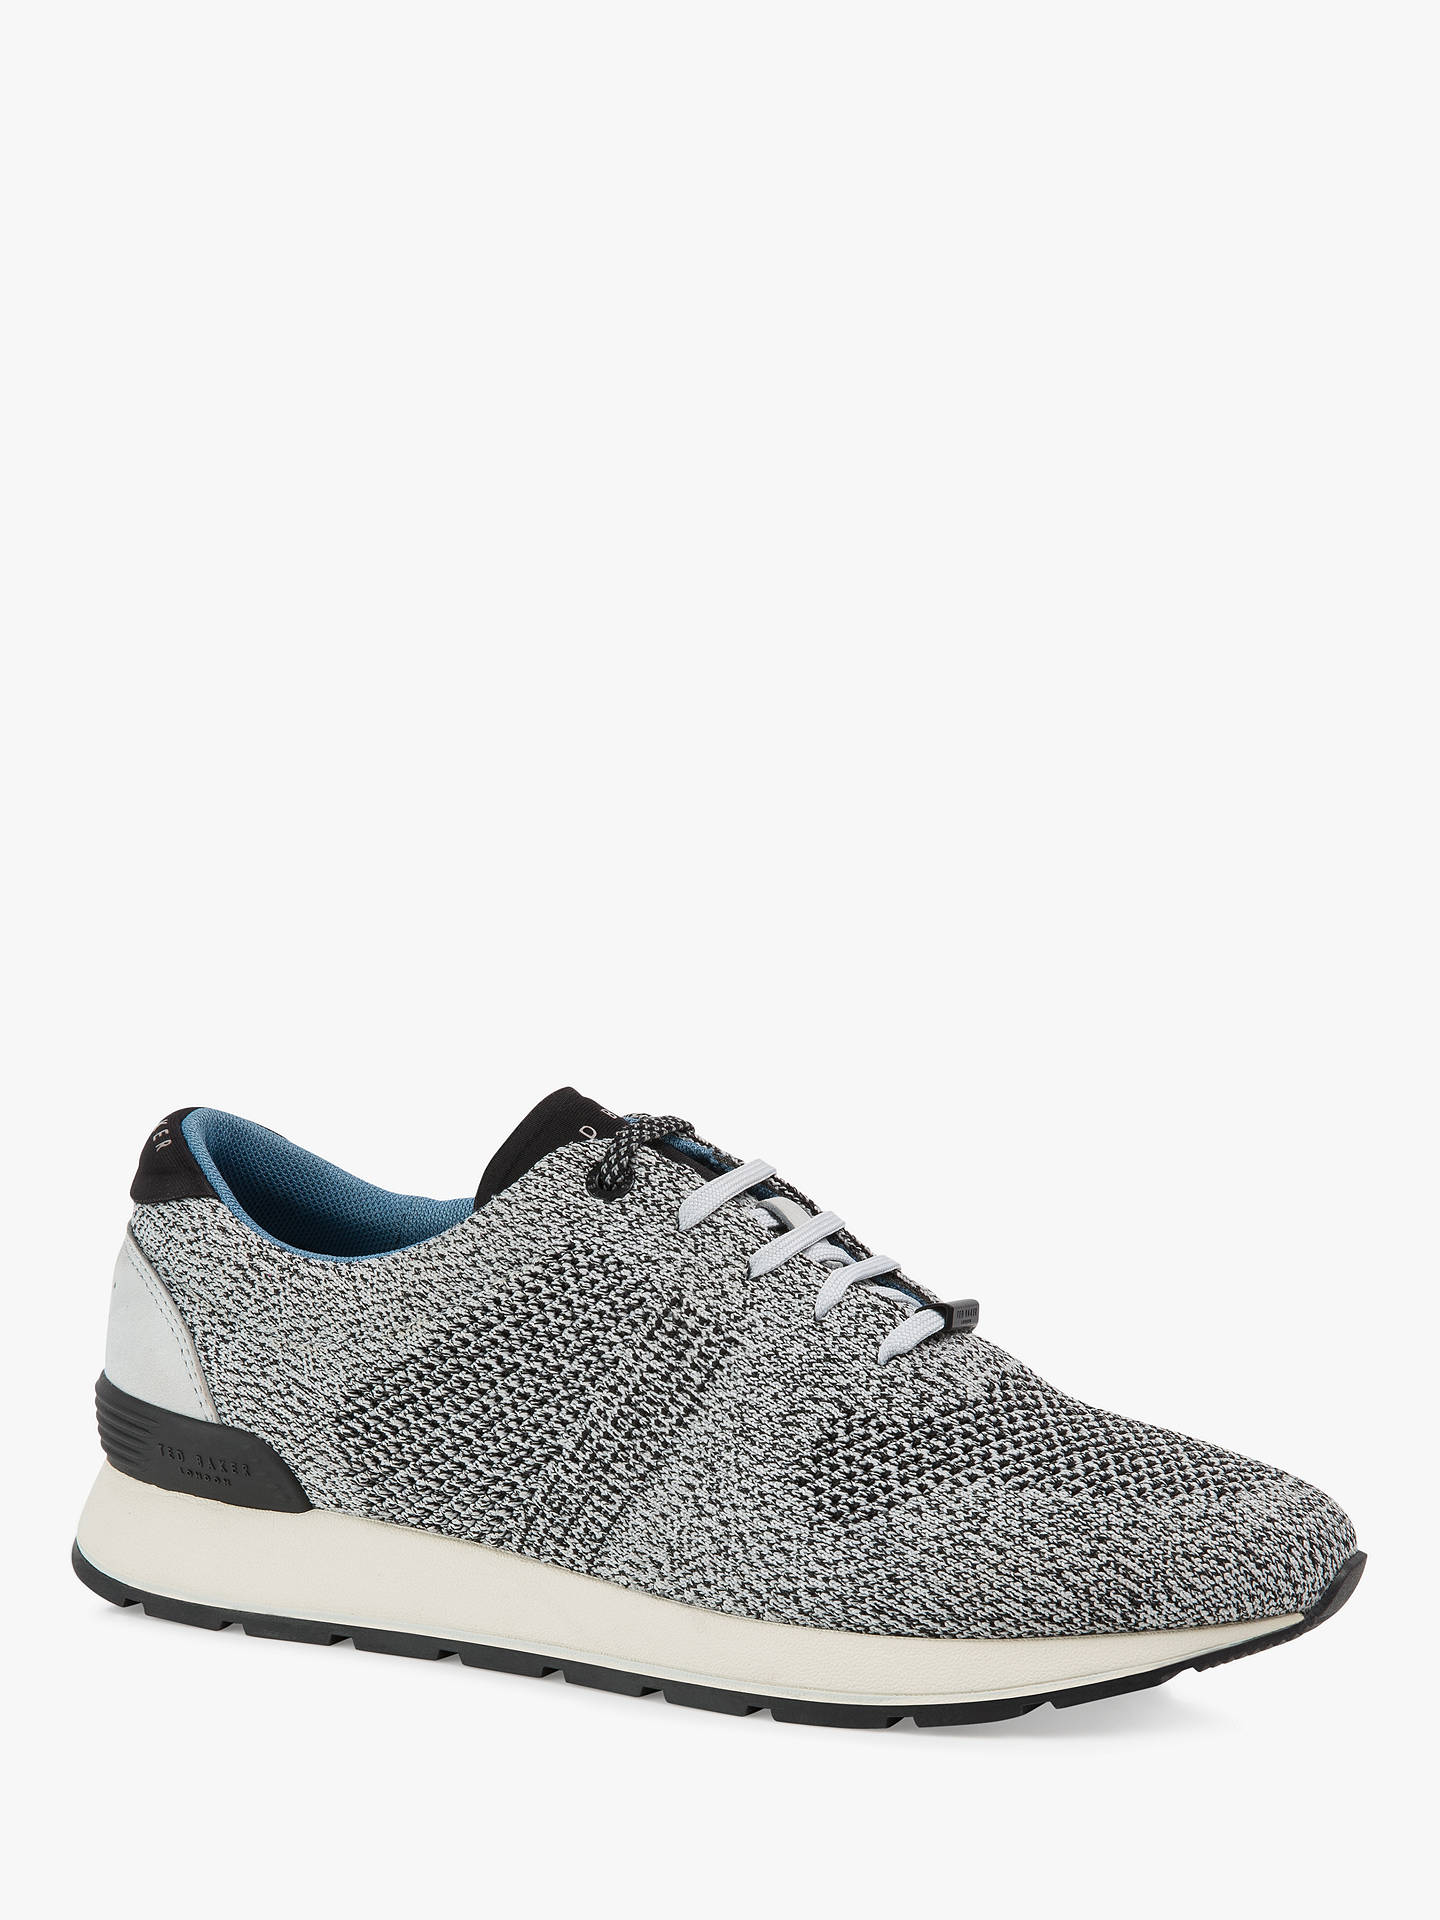 cf80bd55205 ... Buy Ted Baker Hillron Knitted Trainers, Mid Grey, 9 Online at  johnlewis.com